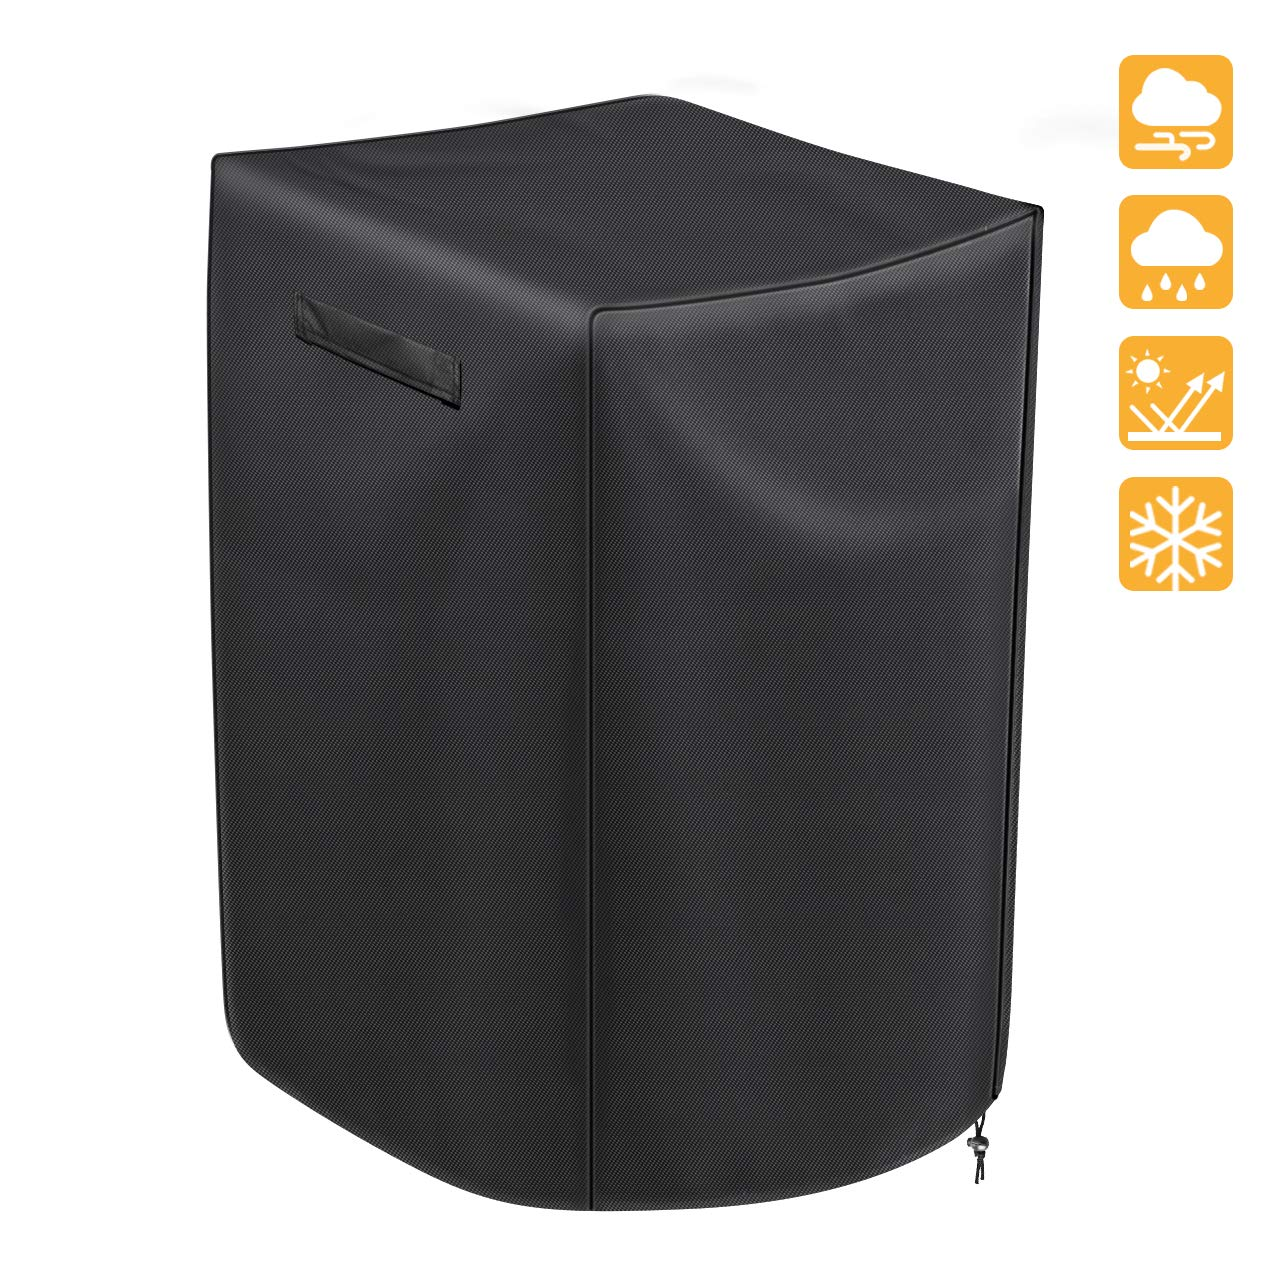 iCOVER 30 Inch Electric Smoker Cover Square, Weather-Resistant Polyester for Outdoor Use, Fits Masterbuilt, Char-Broil, Cuisinart, Dyna-Glo and More Grills